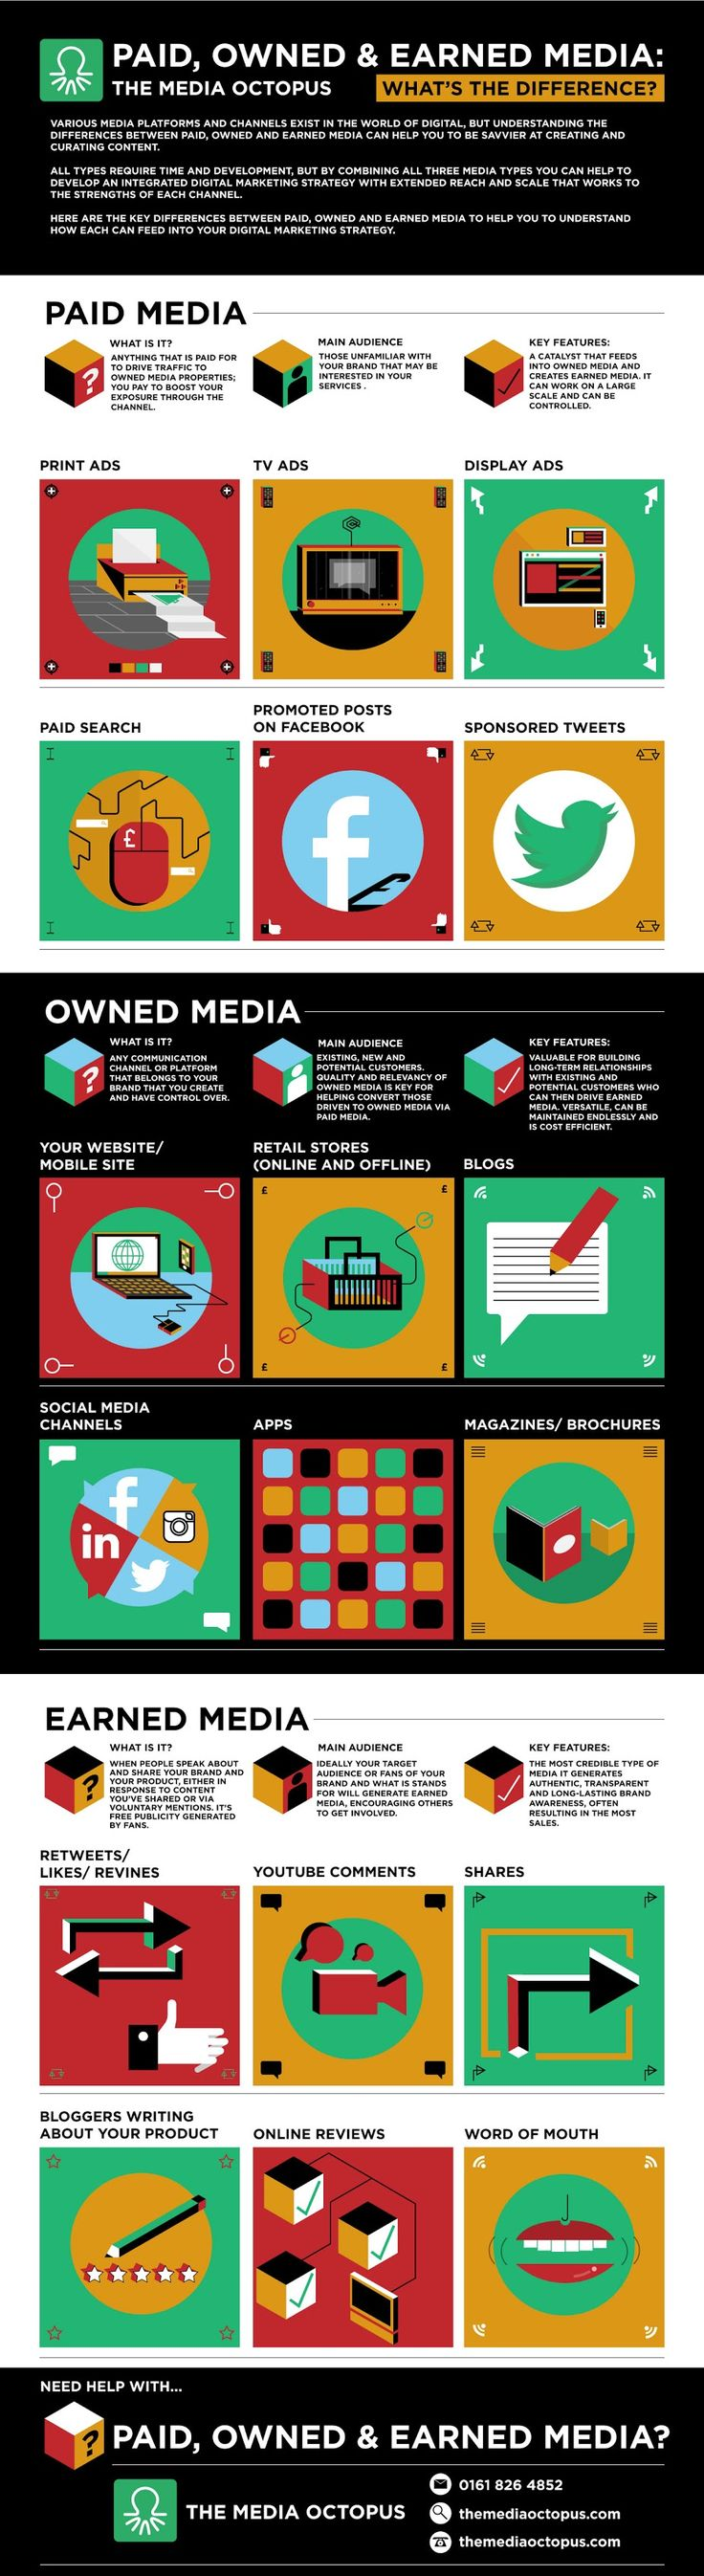 Paid, Owned, and Earned Media: What's the Difference? [Infographic] #DigitalMarketing